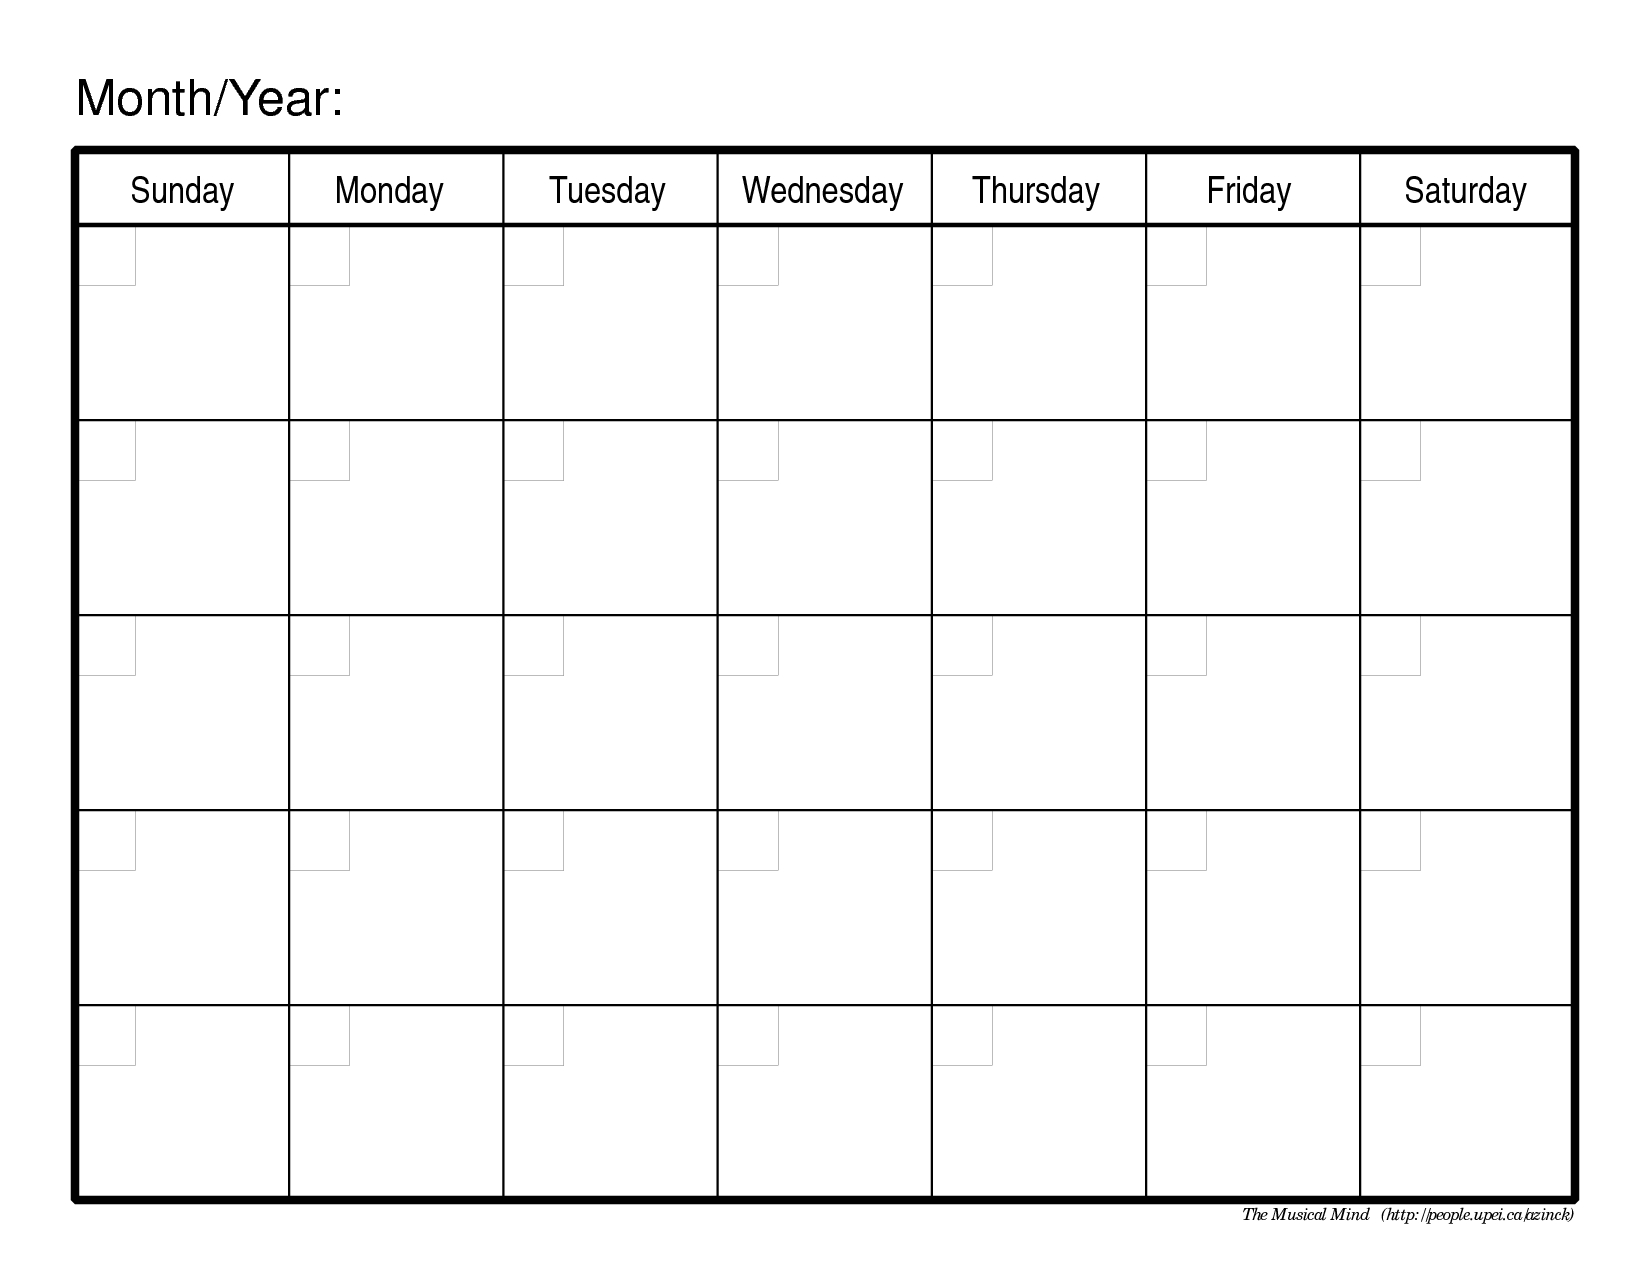 Monthly Calendar Template | Organizing | Monthly Calendar Template intended for Fill In Calendar Template Printable